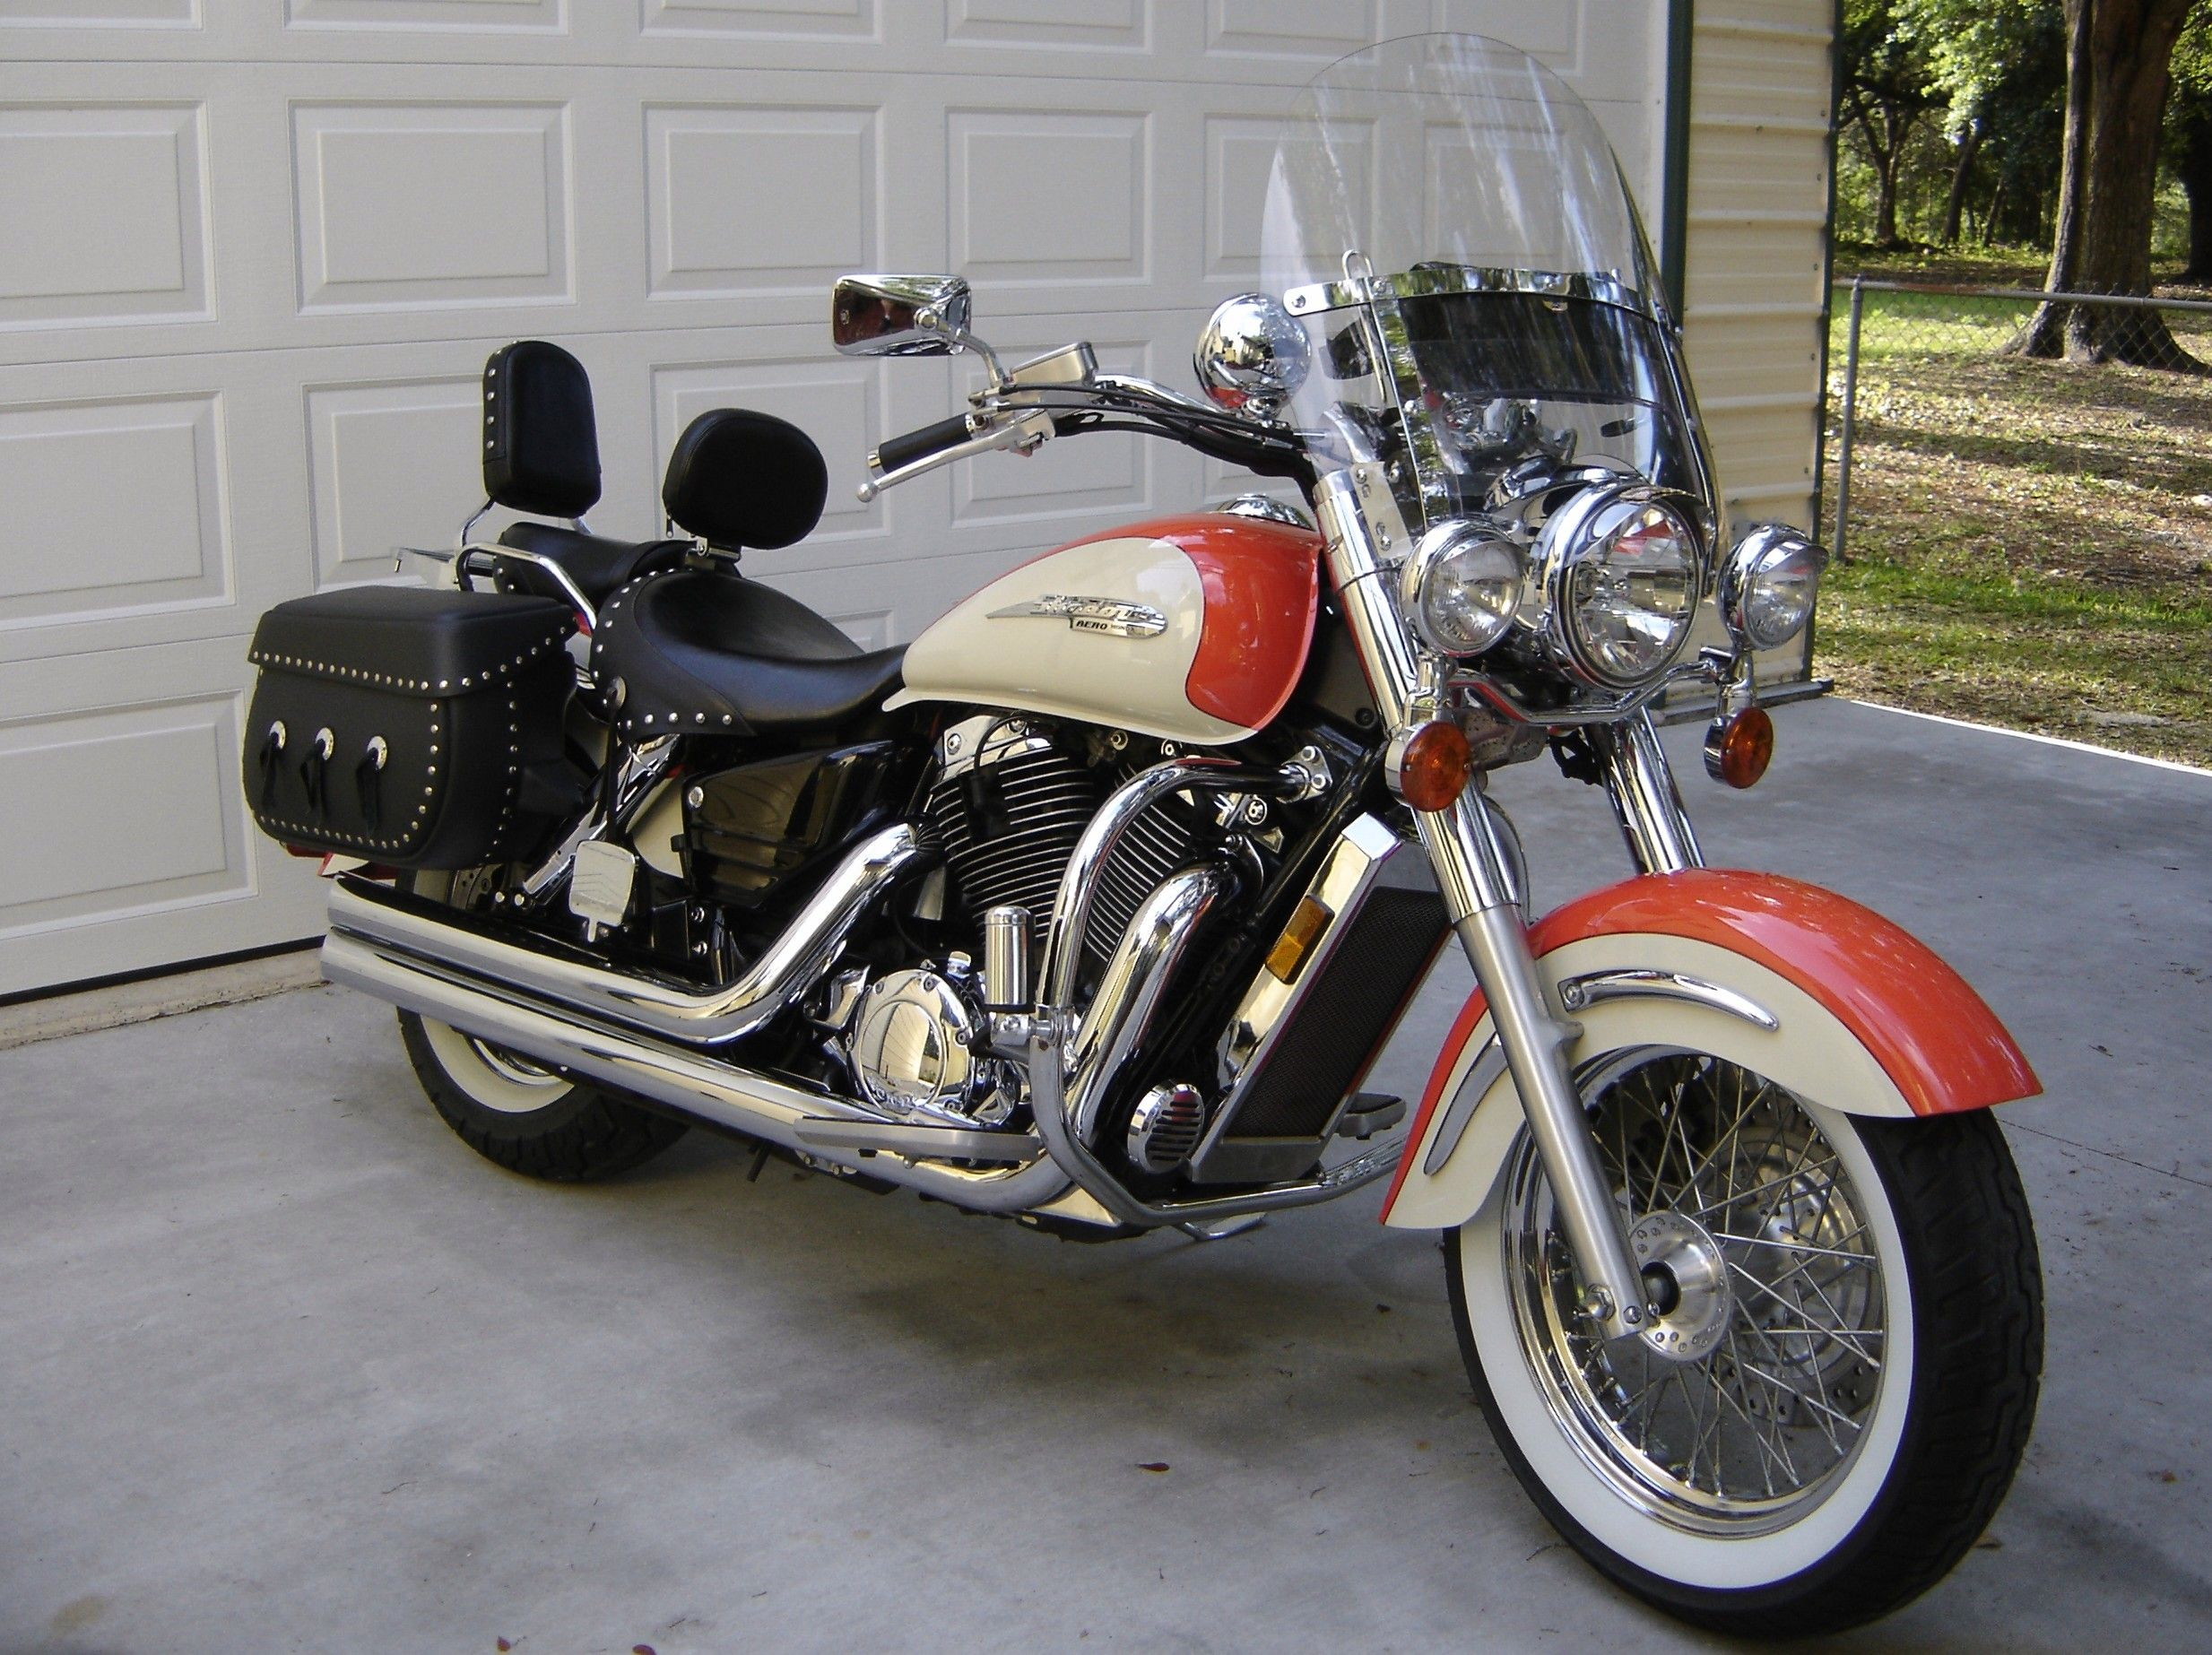 My Ride 1999 Honda Shadow Aero 1100 Motorcycles Honda Shadow